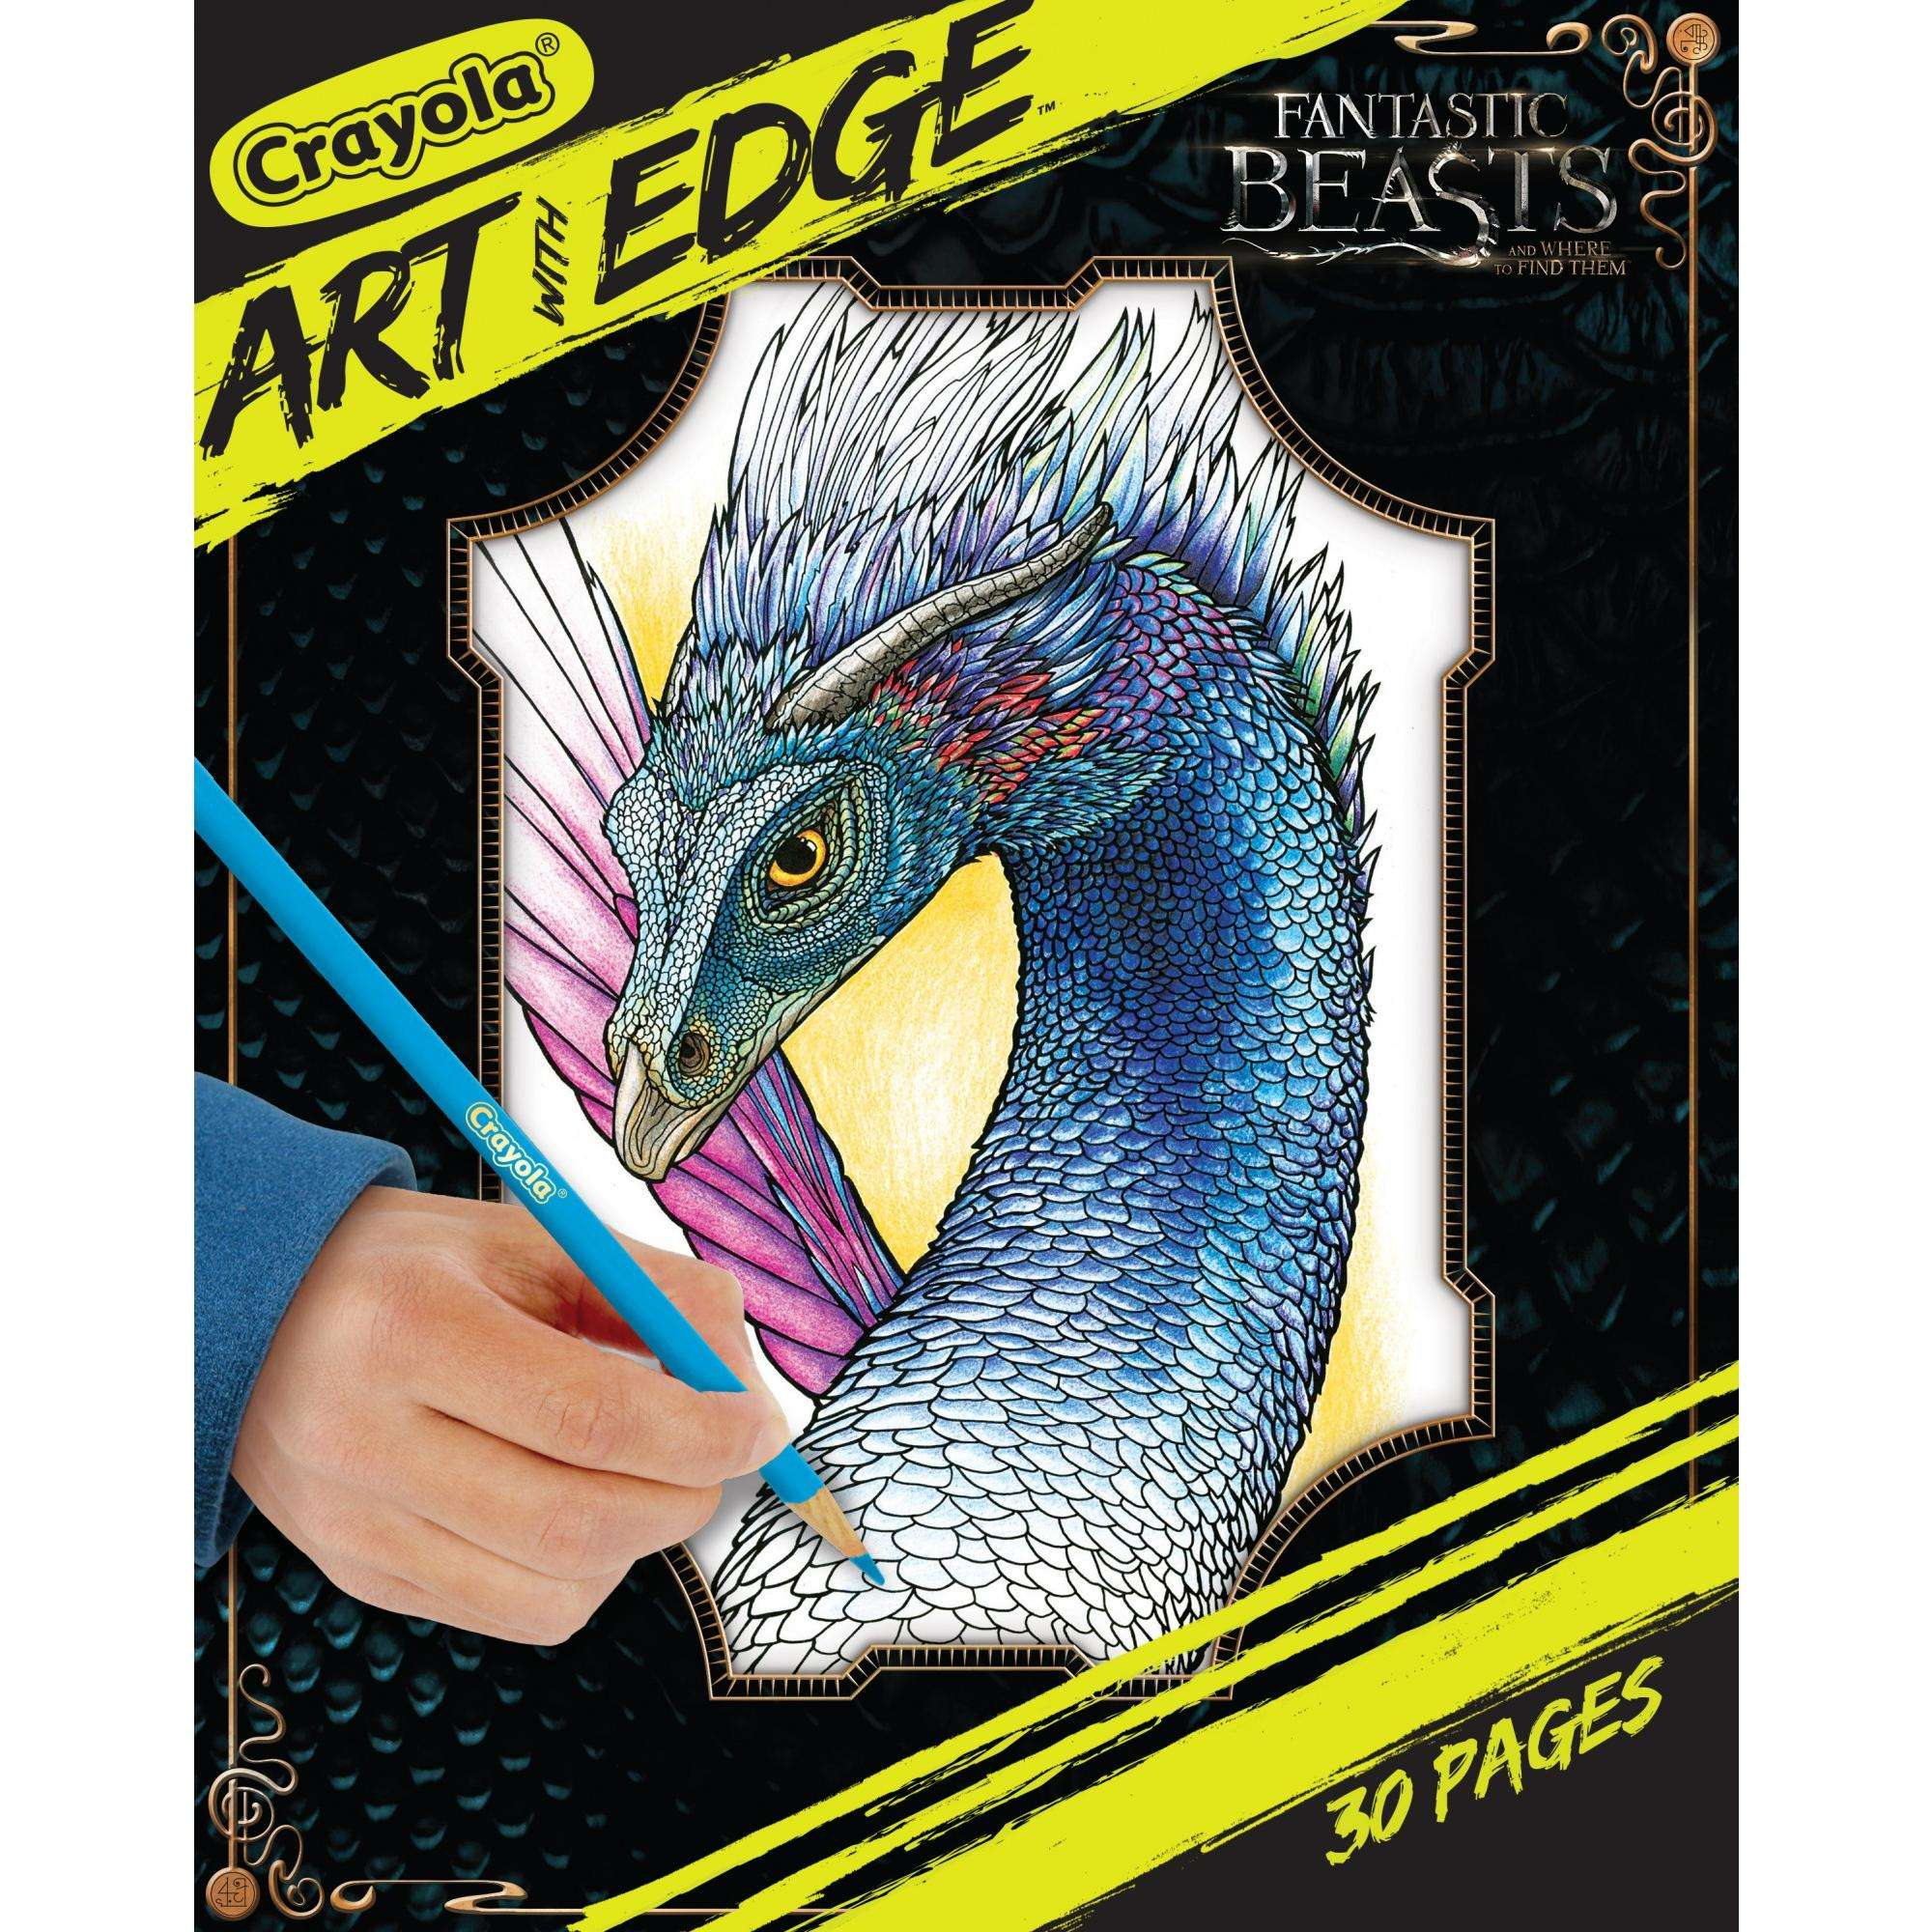 Crayola Art With Edge Fantastic Beast Coloring Book by Crayola